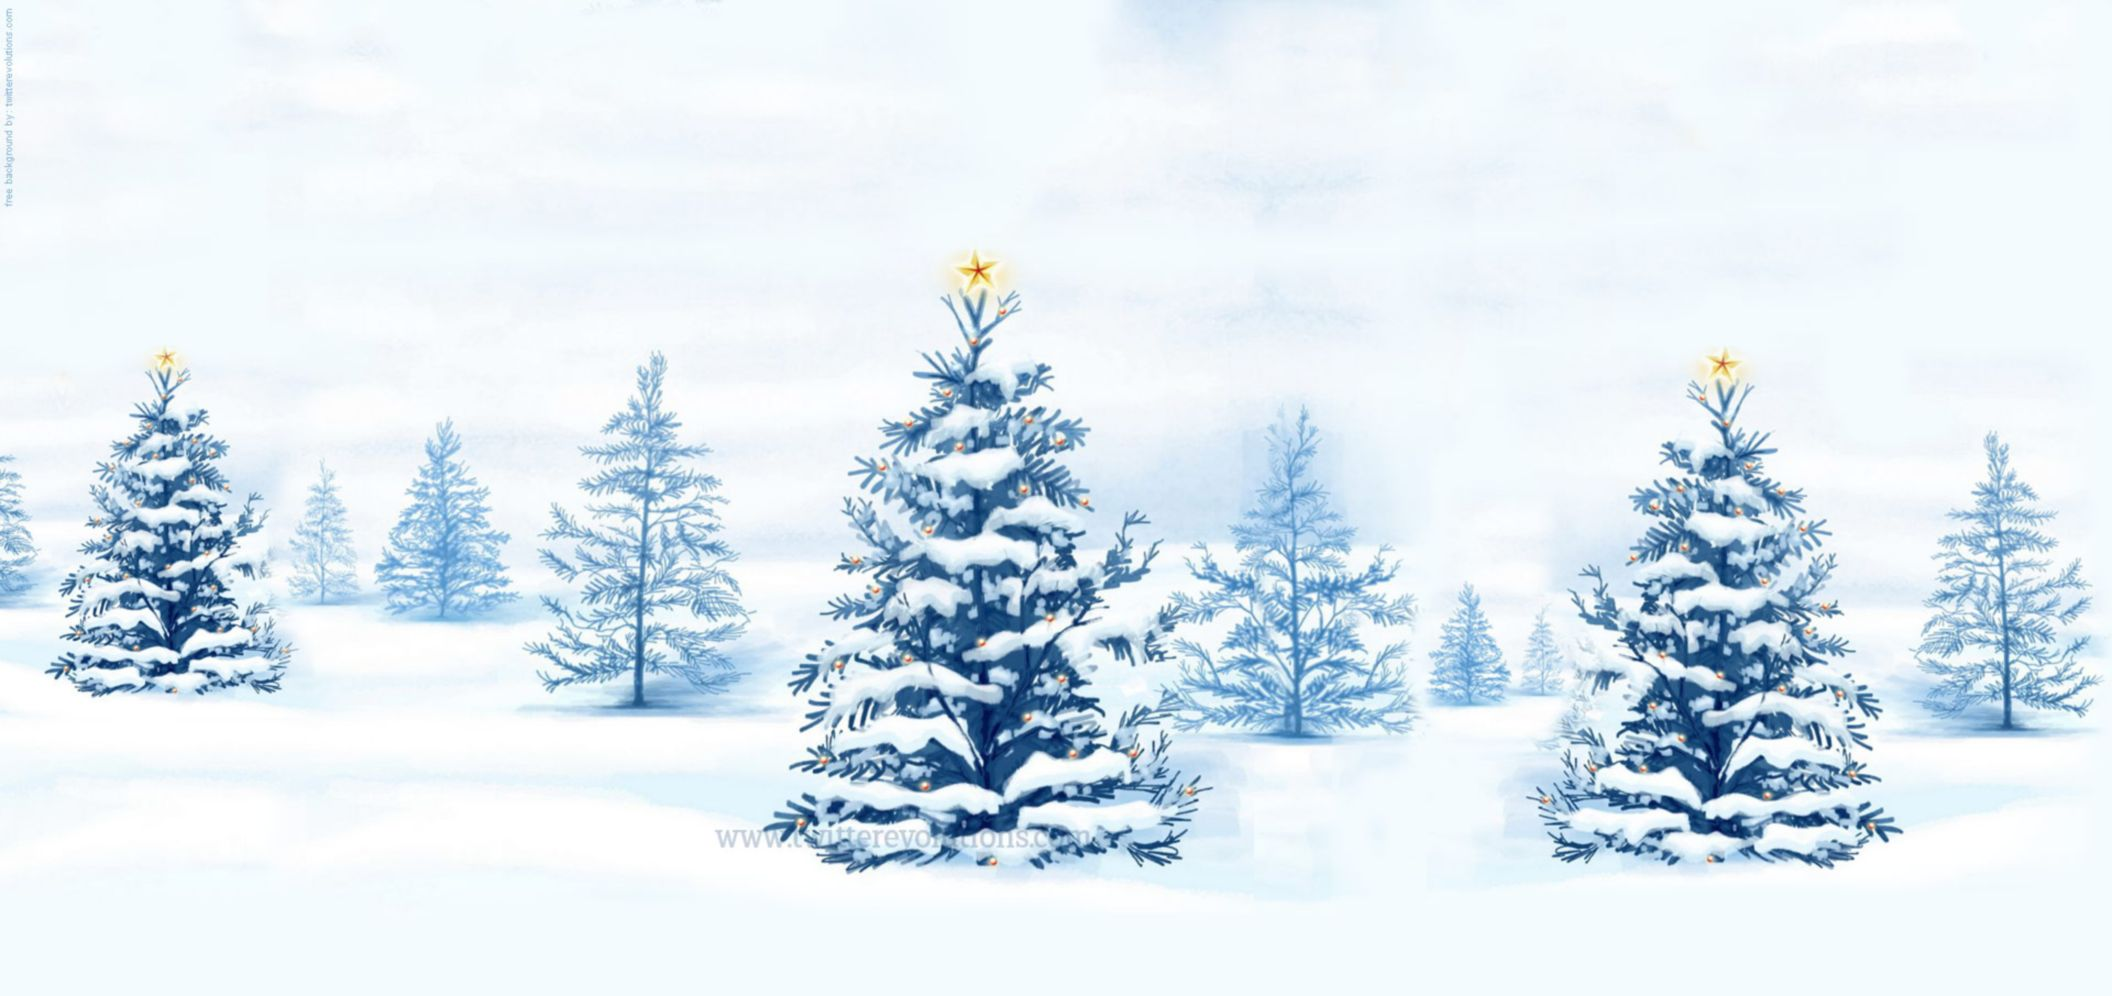 Download free HD Snowy Winter Christmas Tree Wallpaper, image